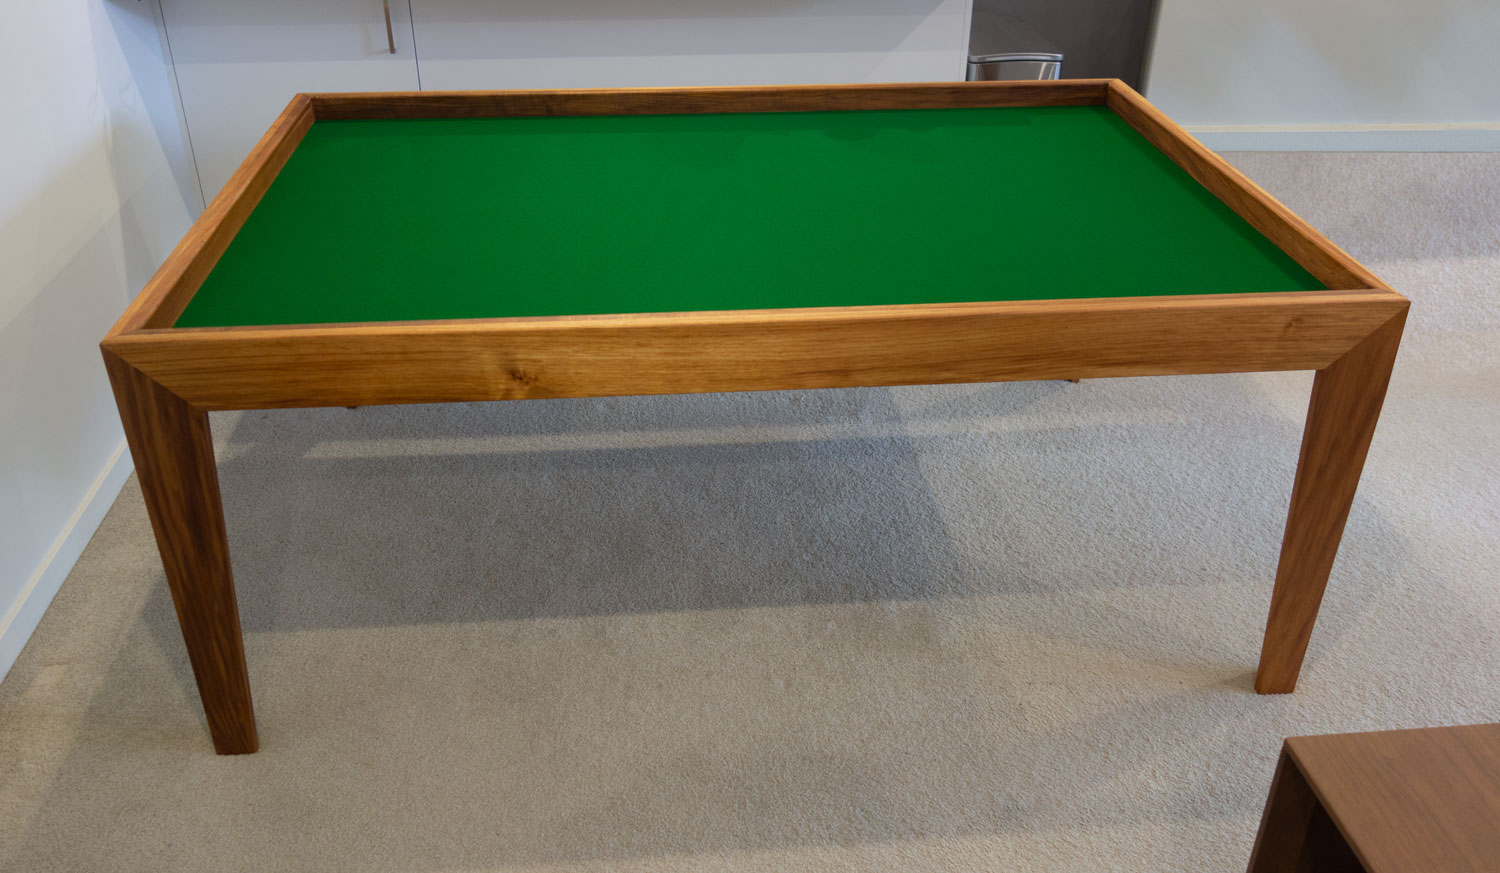 Dining table with top removed becomes a games table